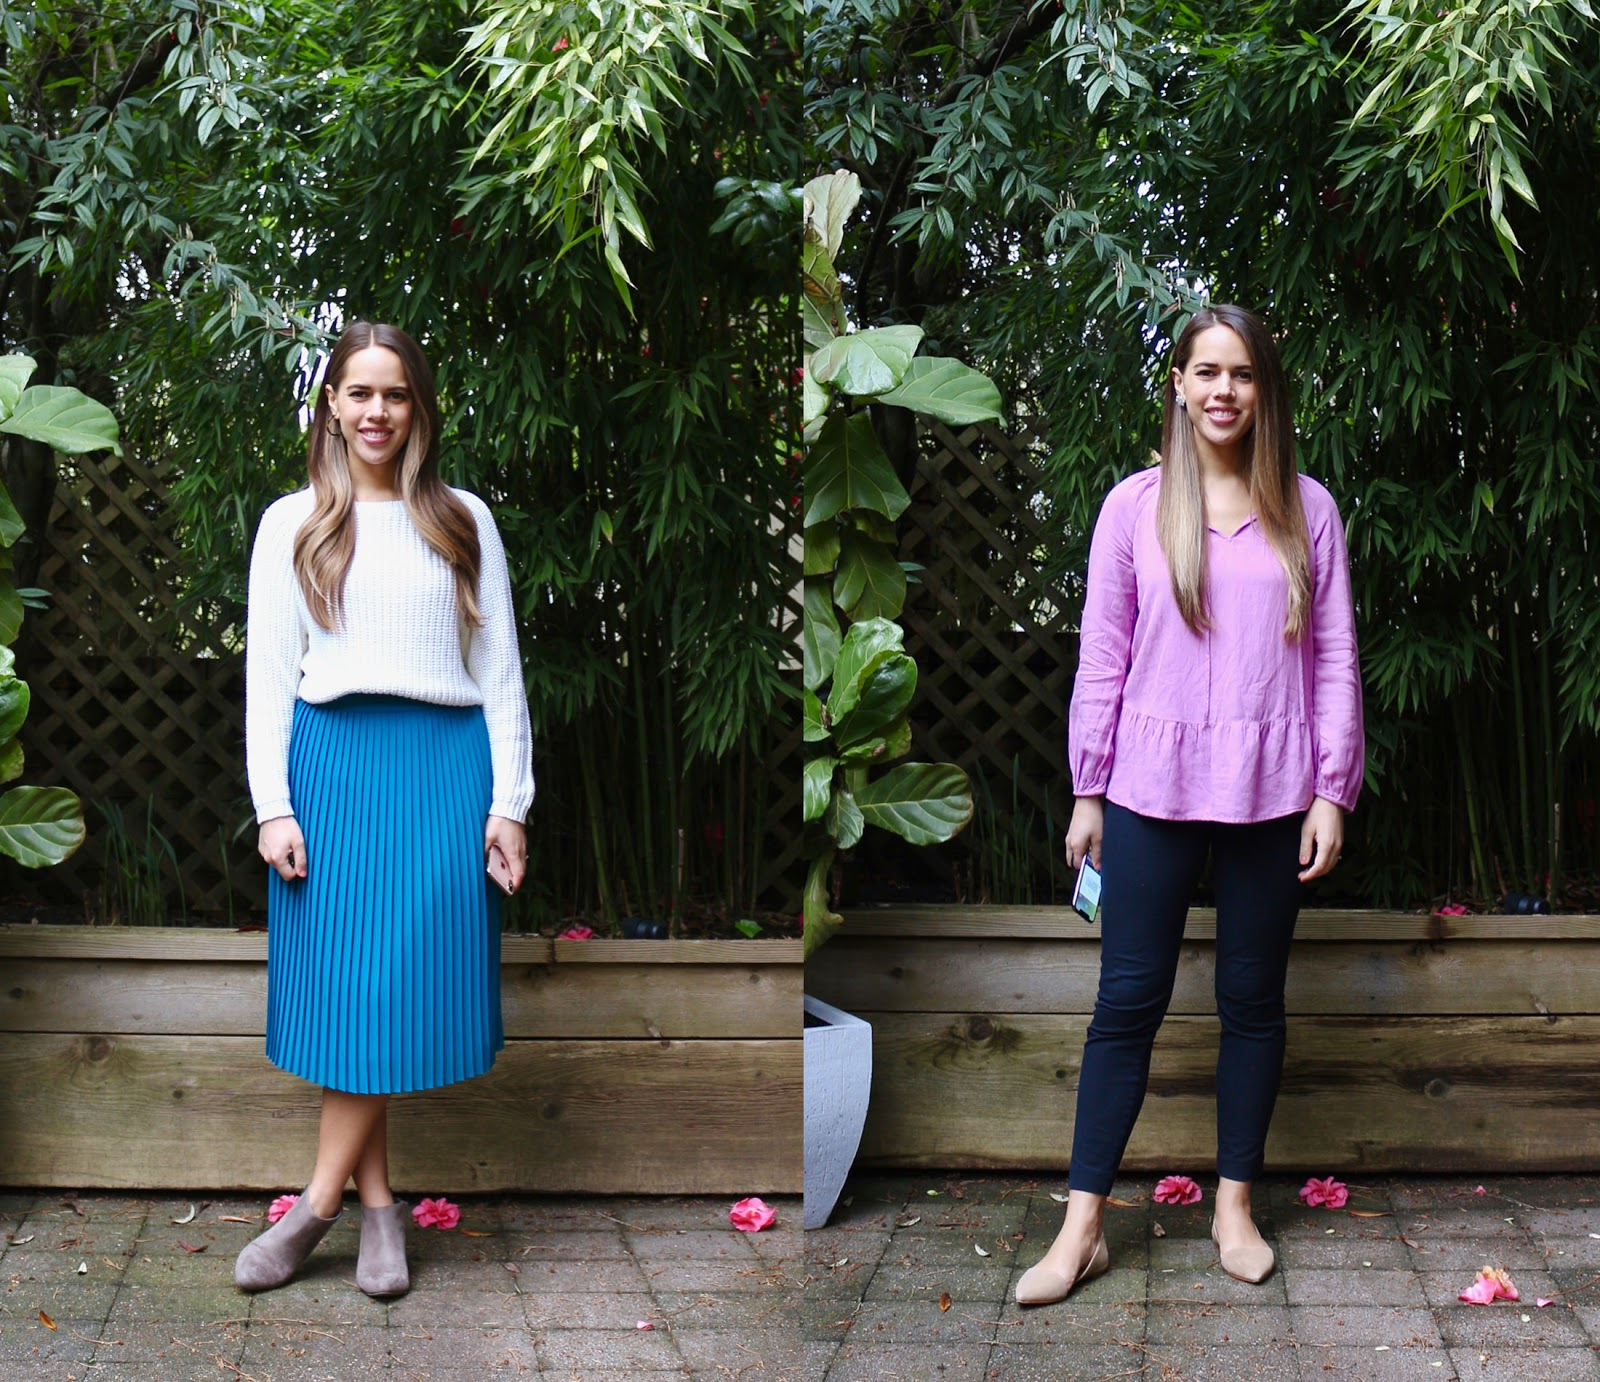 Jules in Flats - April Outfits (Business Casual Spring Workwear on a Budget)